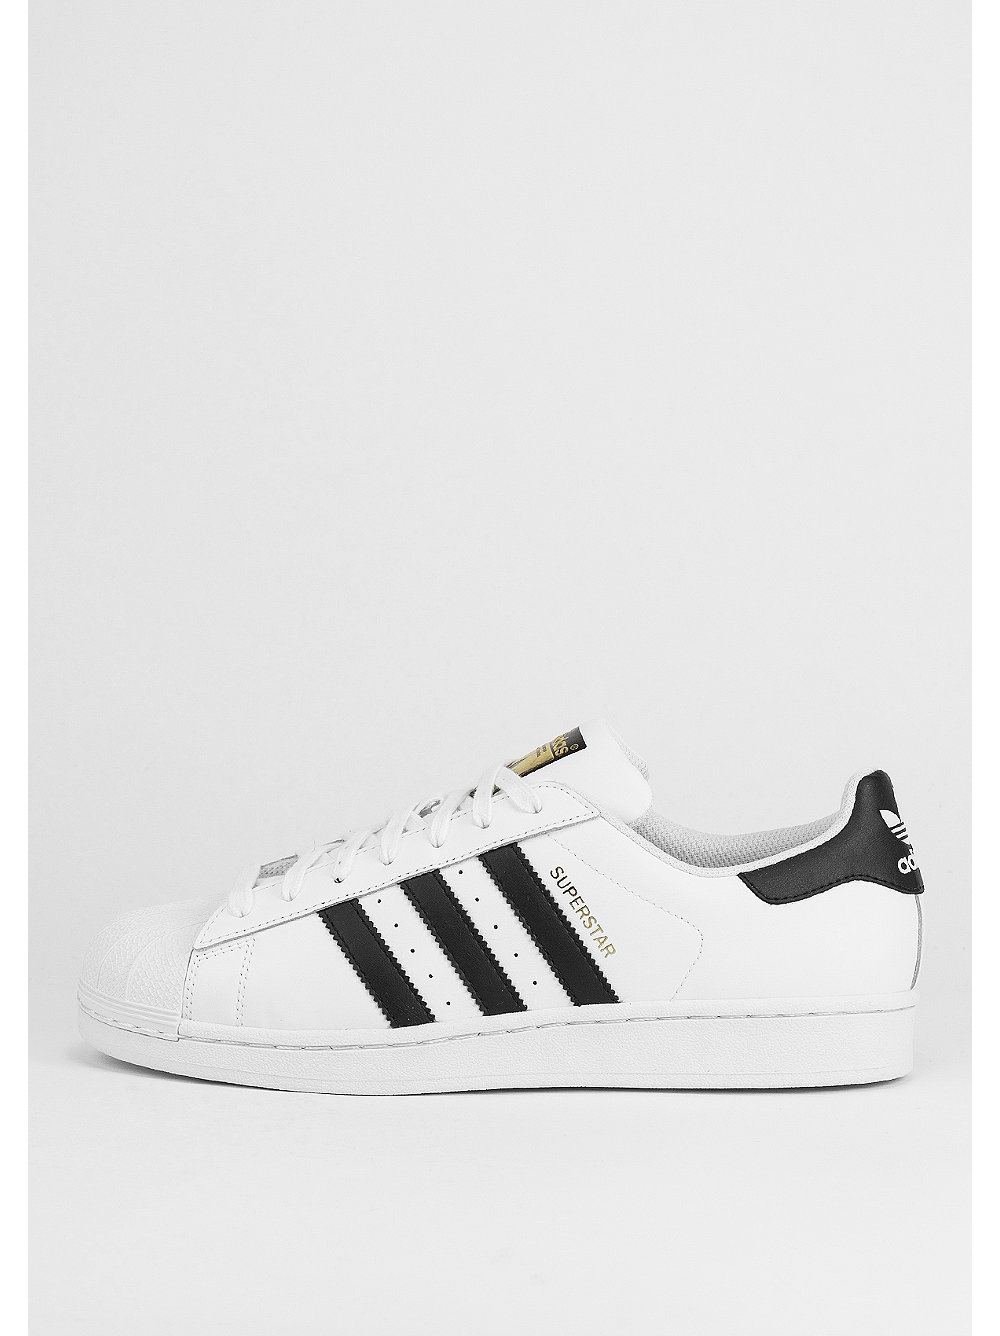 adidas Superstar II white-black